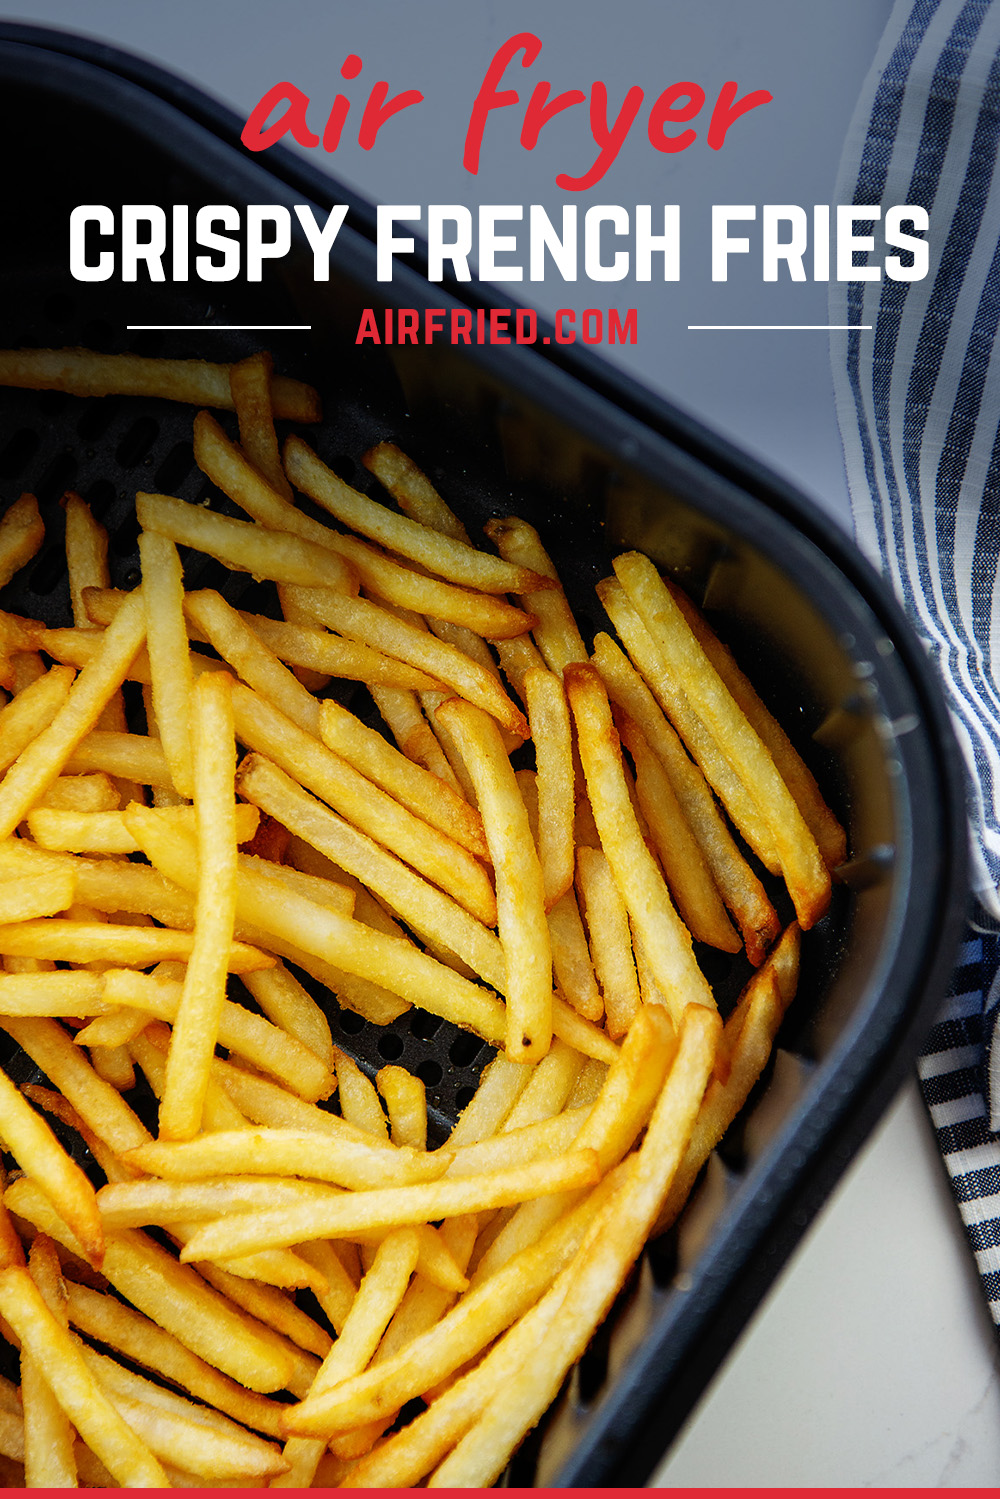 Crispy, golden french fries are easy to make in an air fryer basket. #airfried #fries #recipes